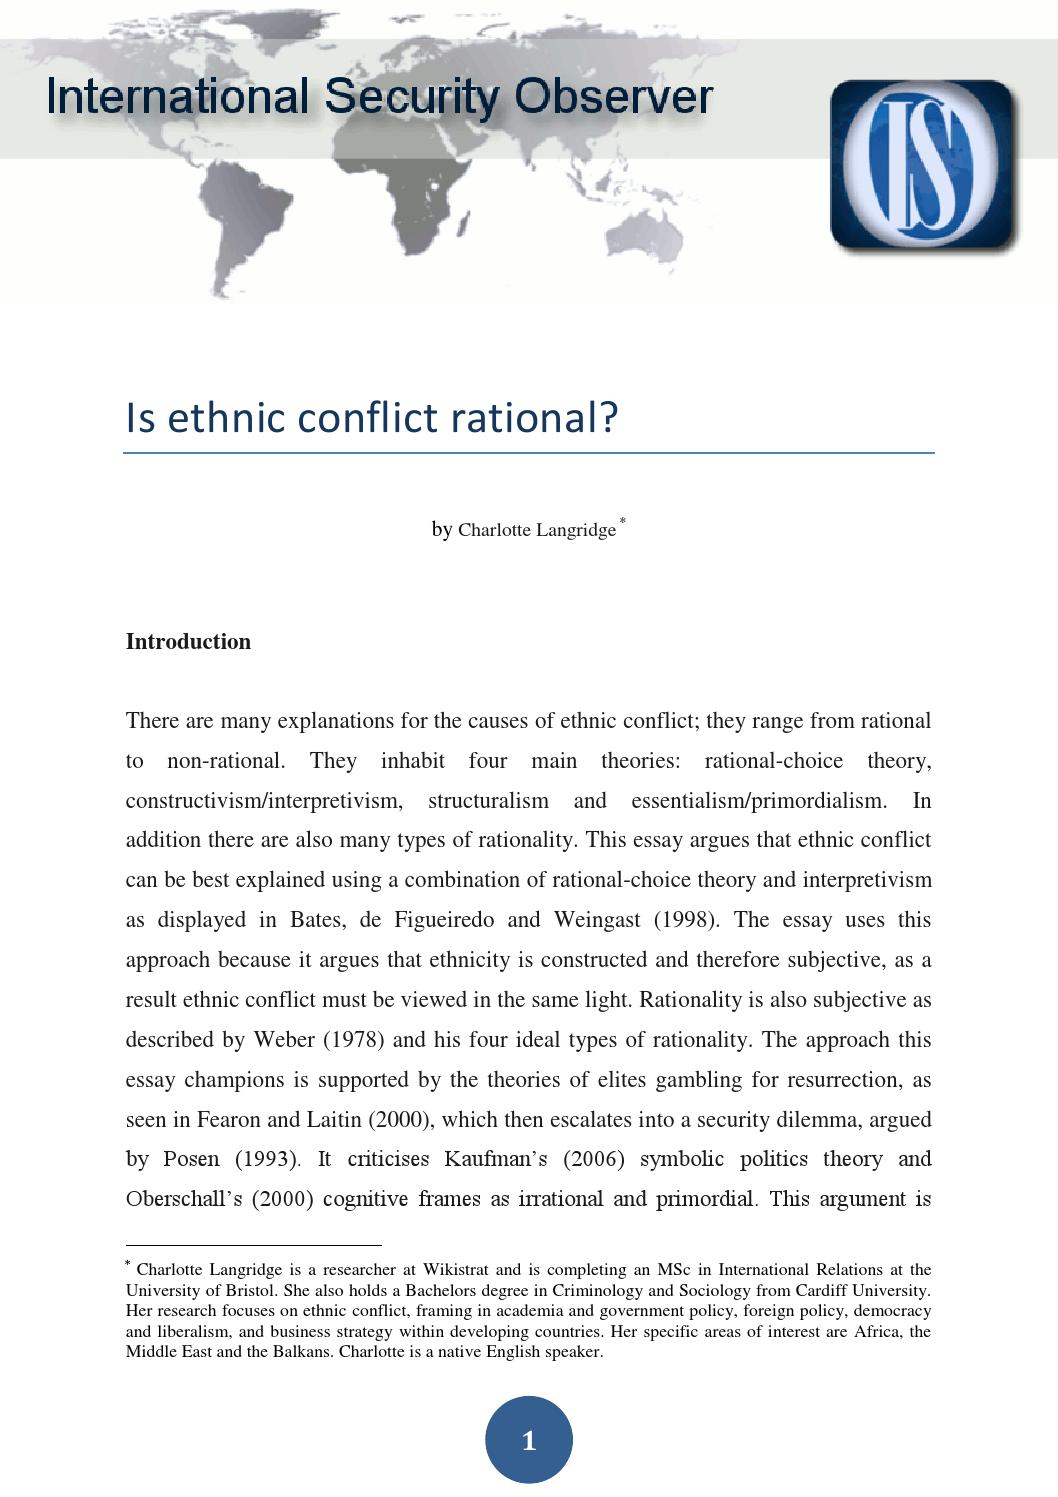 is ethnic conflict rational langridge is ethnic conflict ration 3 years ago isobserver